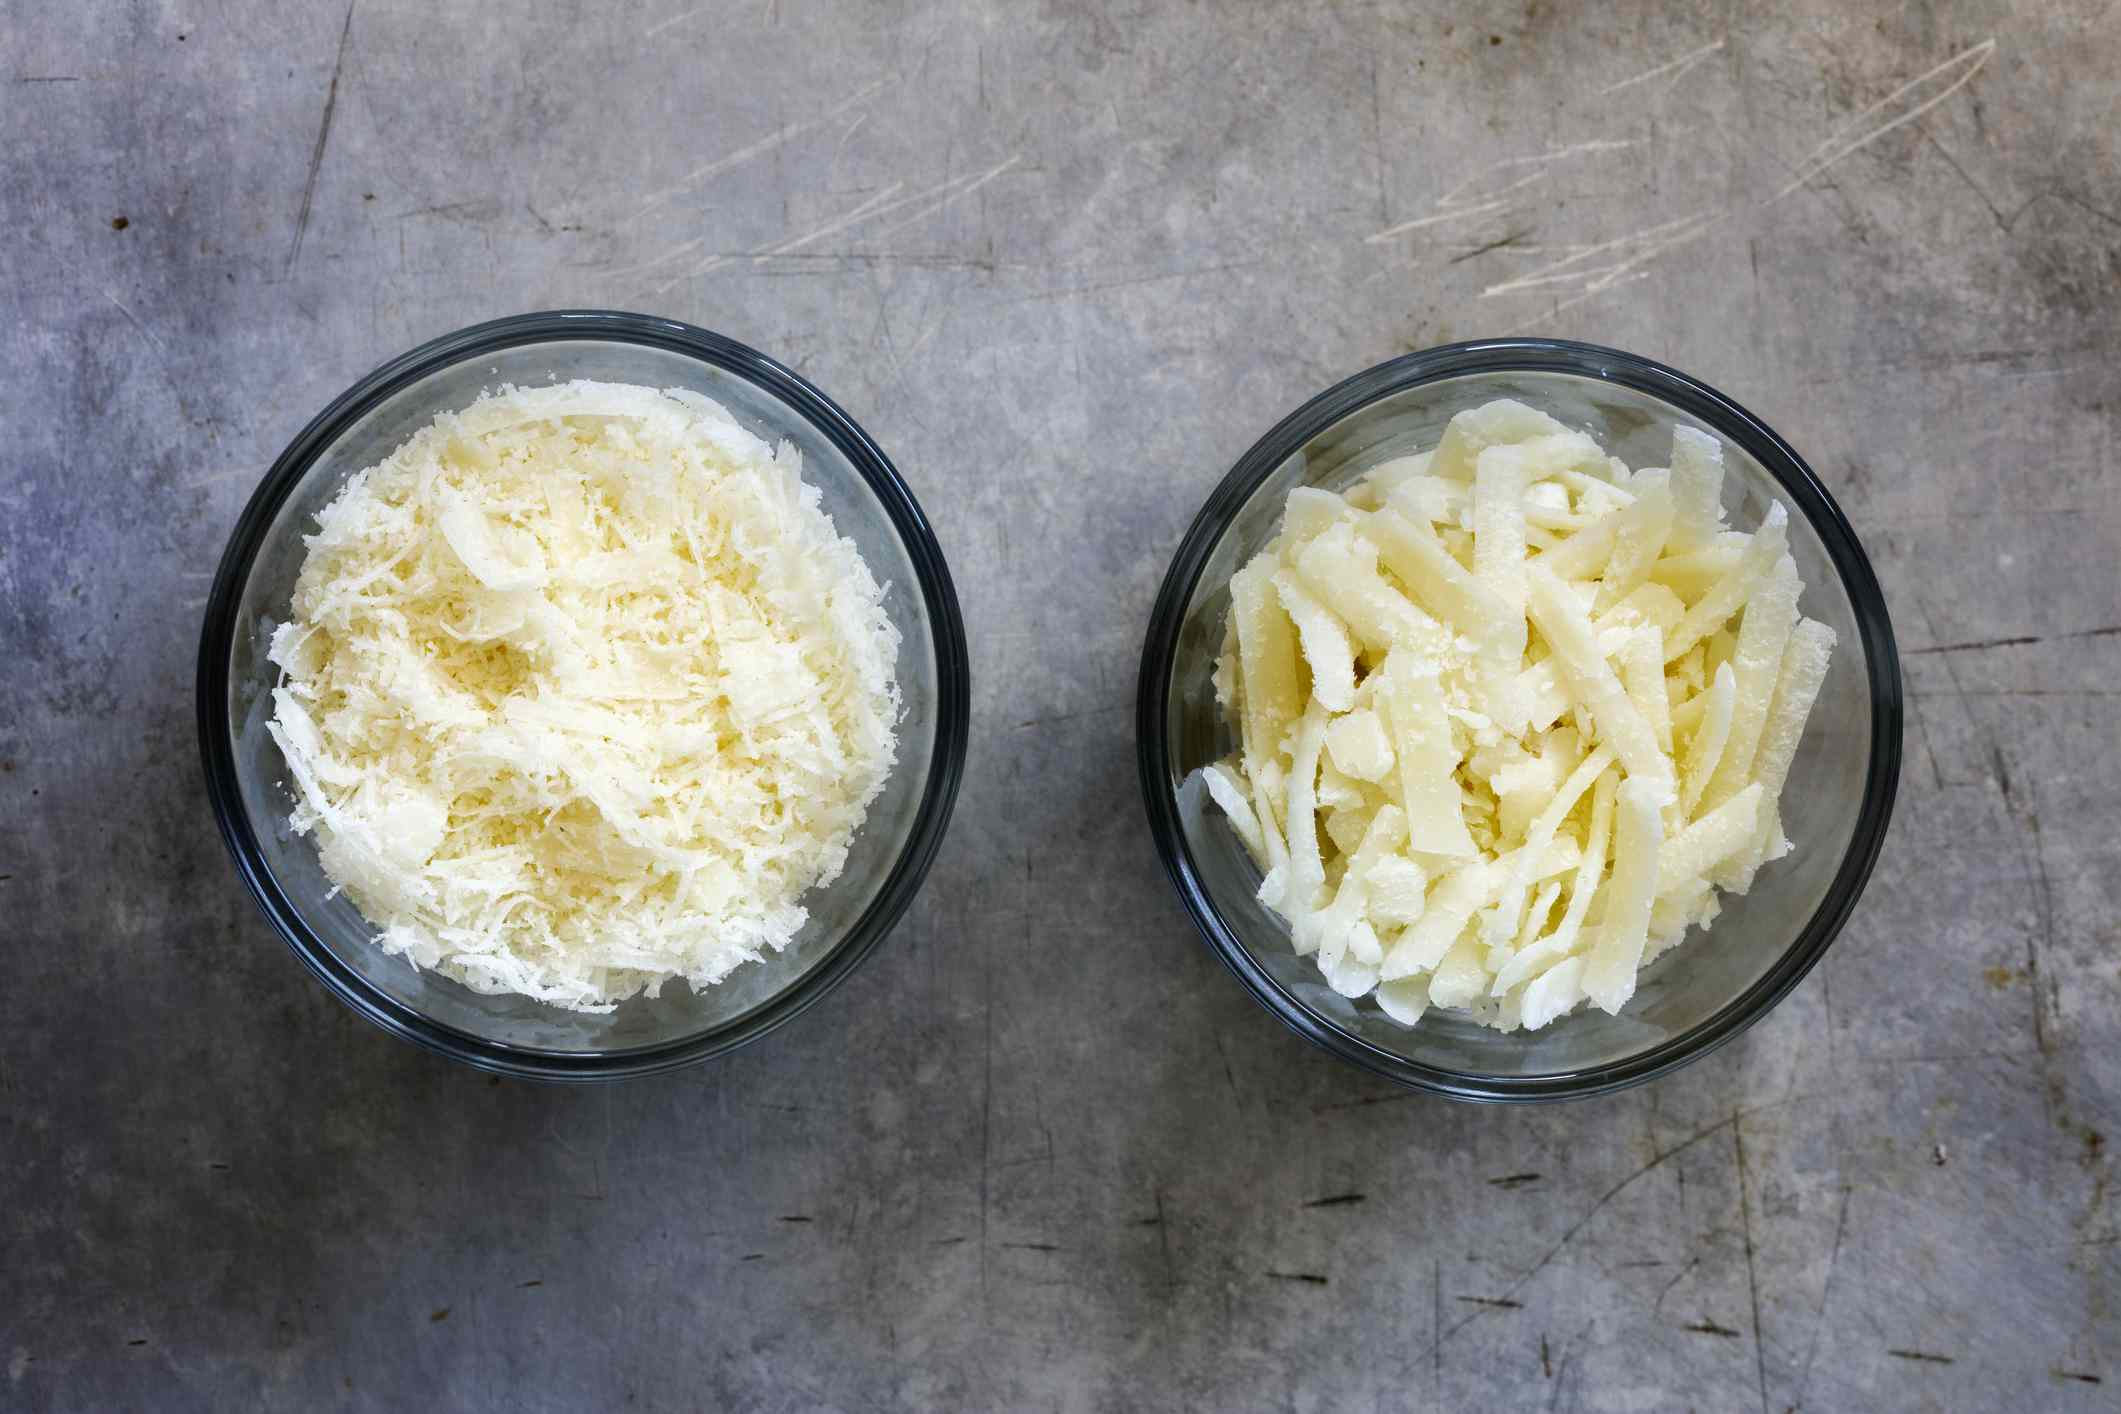 Different grated parmesan in glass bowls